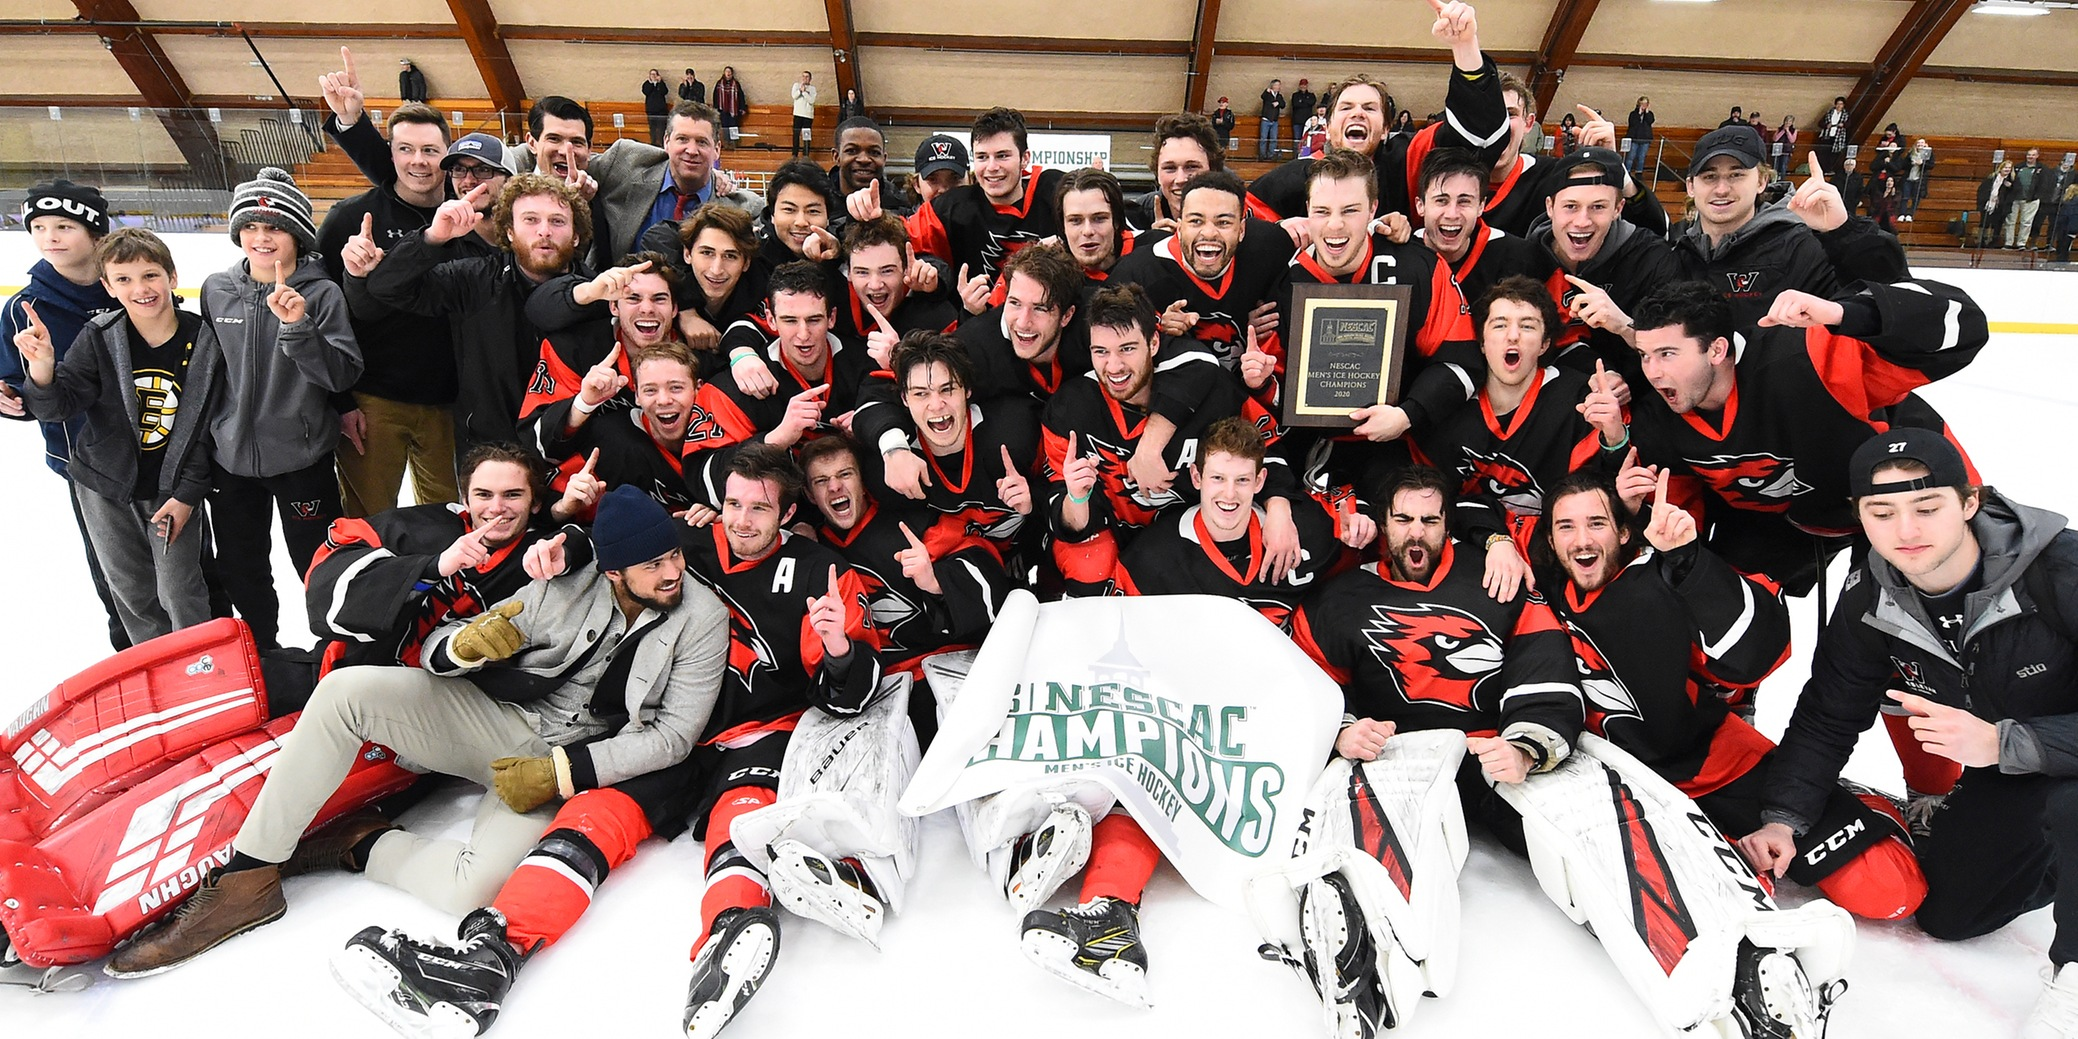 Wesleyan captured the school's first-ever NESCAC Men's Hockey Championship with a 7-2 victory over No. 8 Trinity (photo credit: Steve McLaughlin)